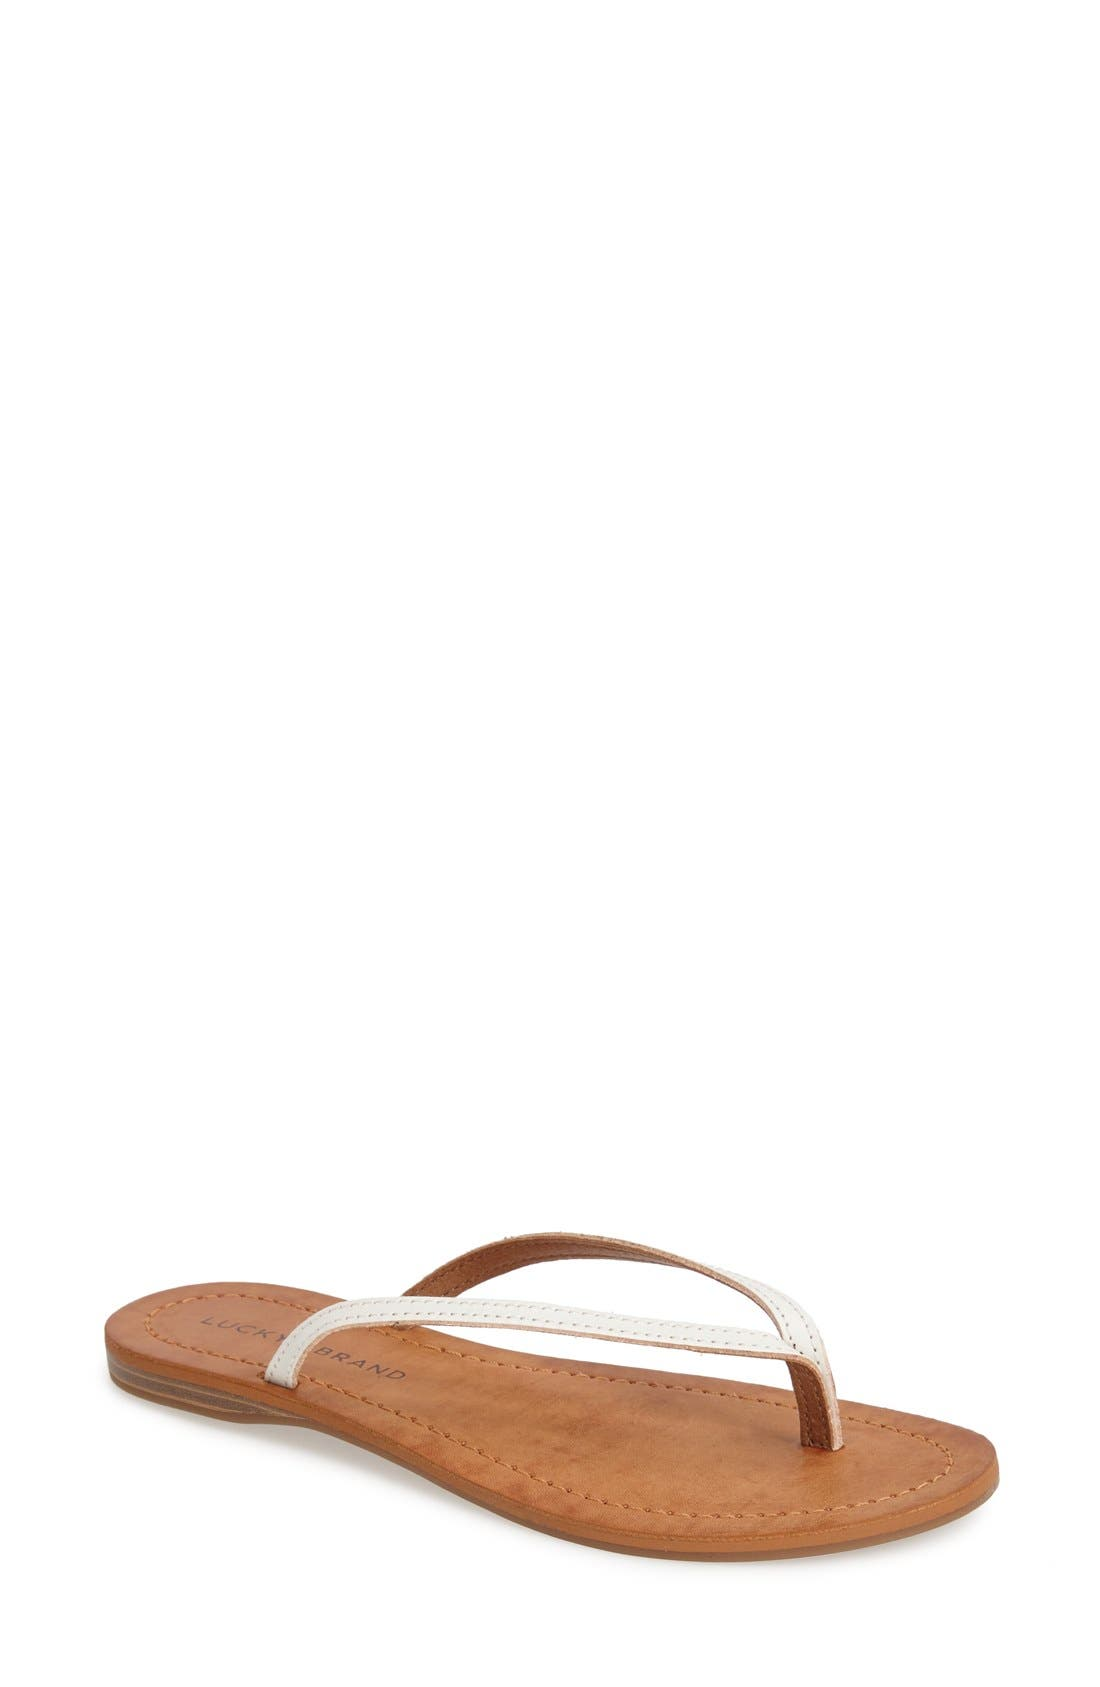 Alternate Image 1 Selected - Lucky Brand 'Amberr' Leather Thong Sandal (Women)